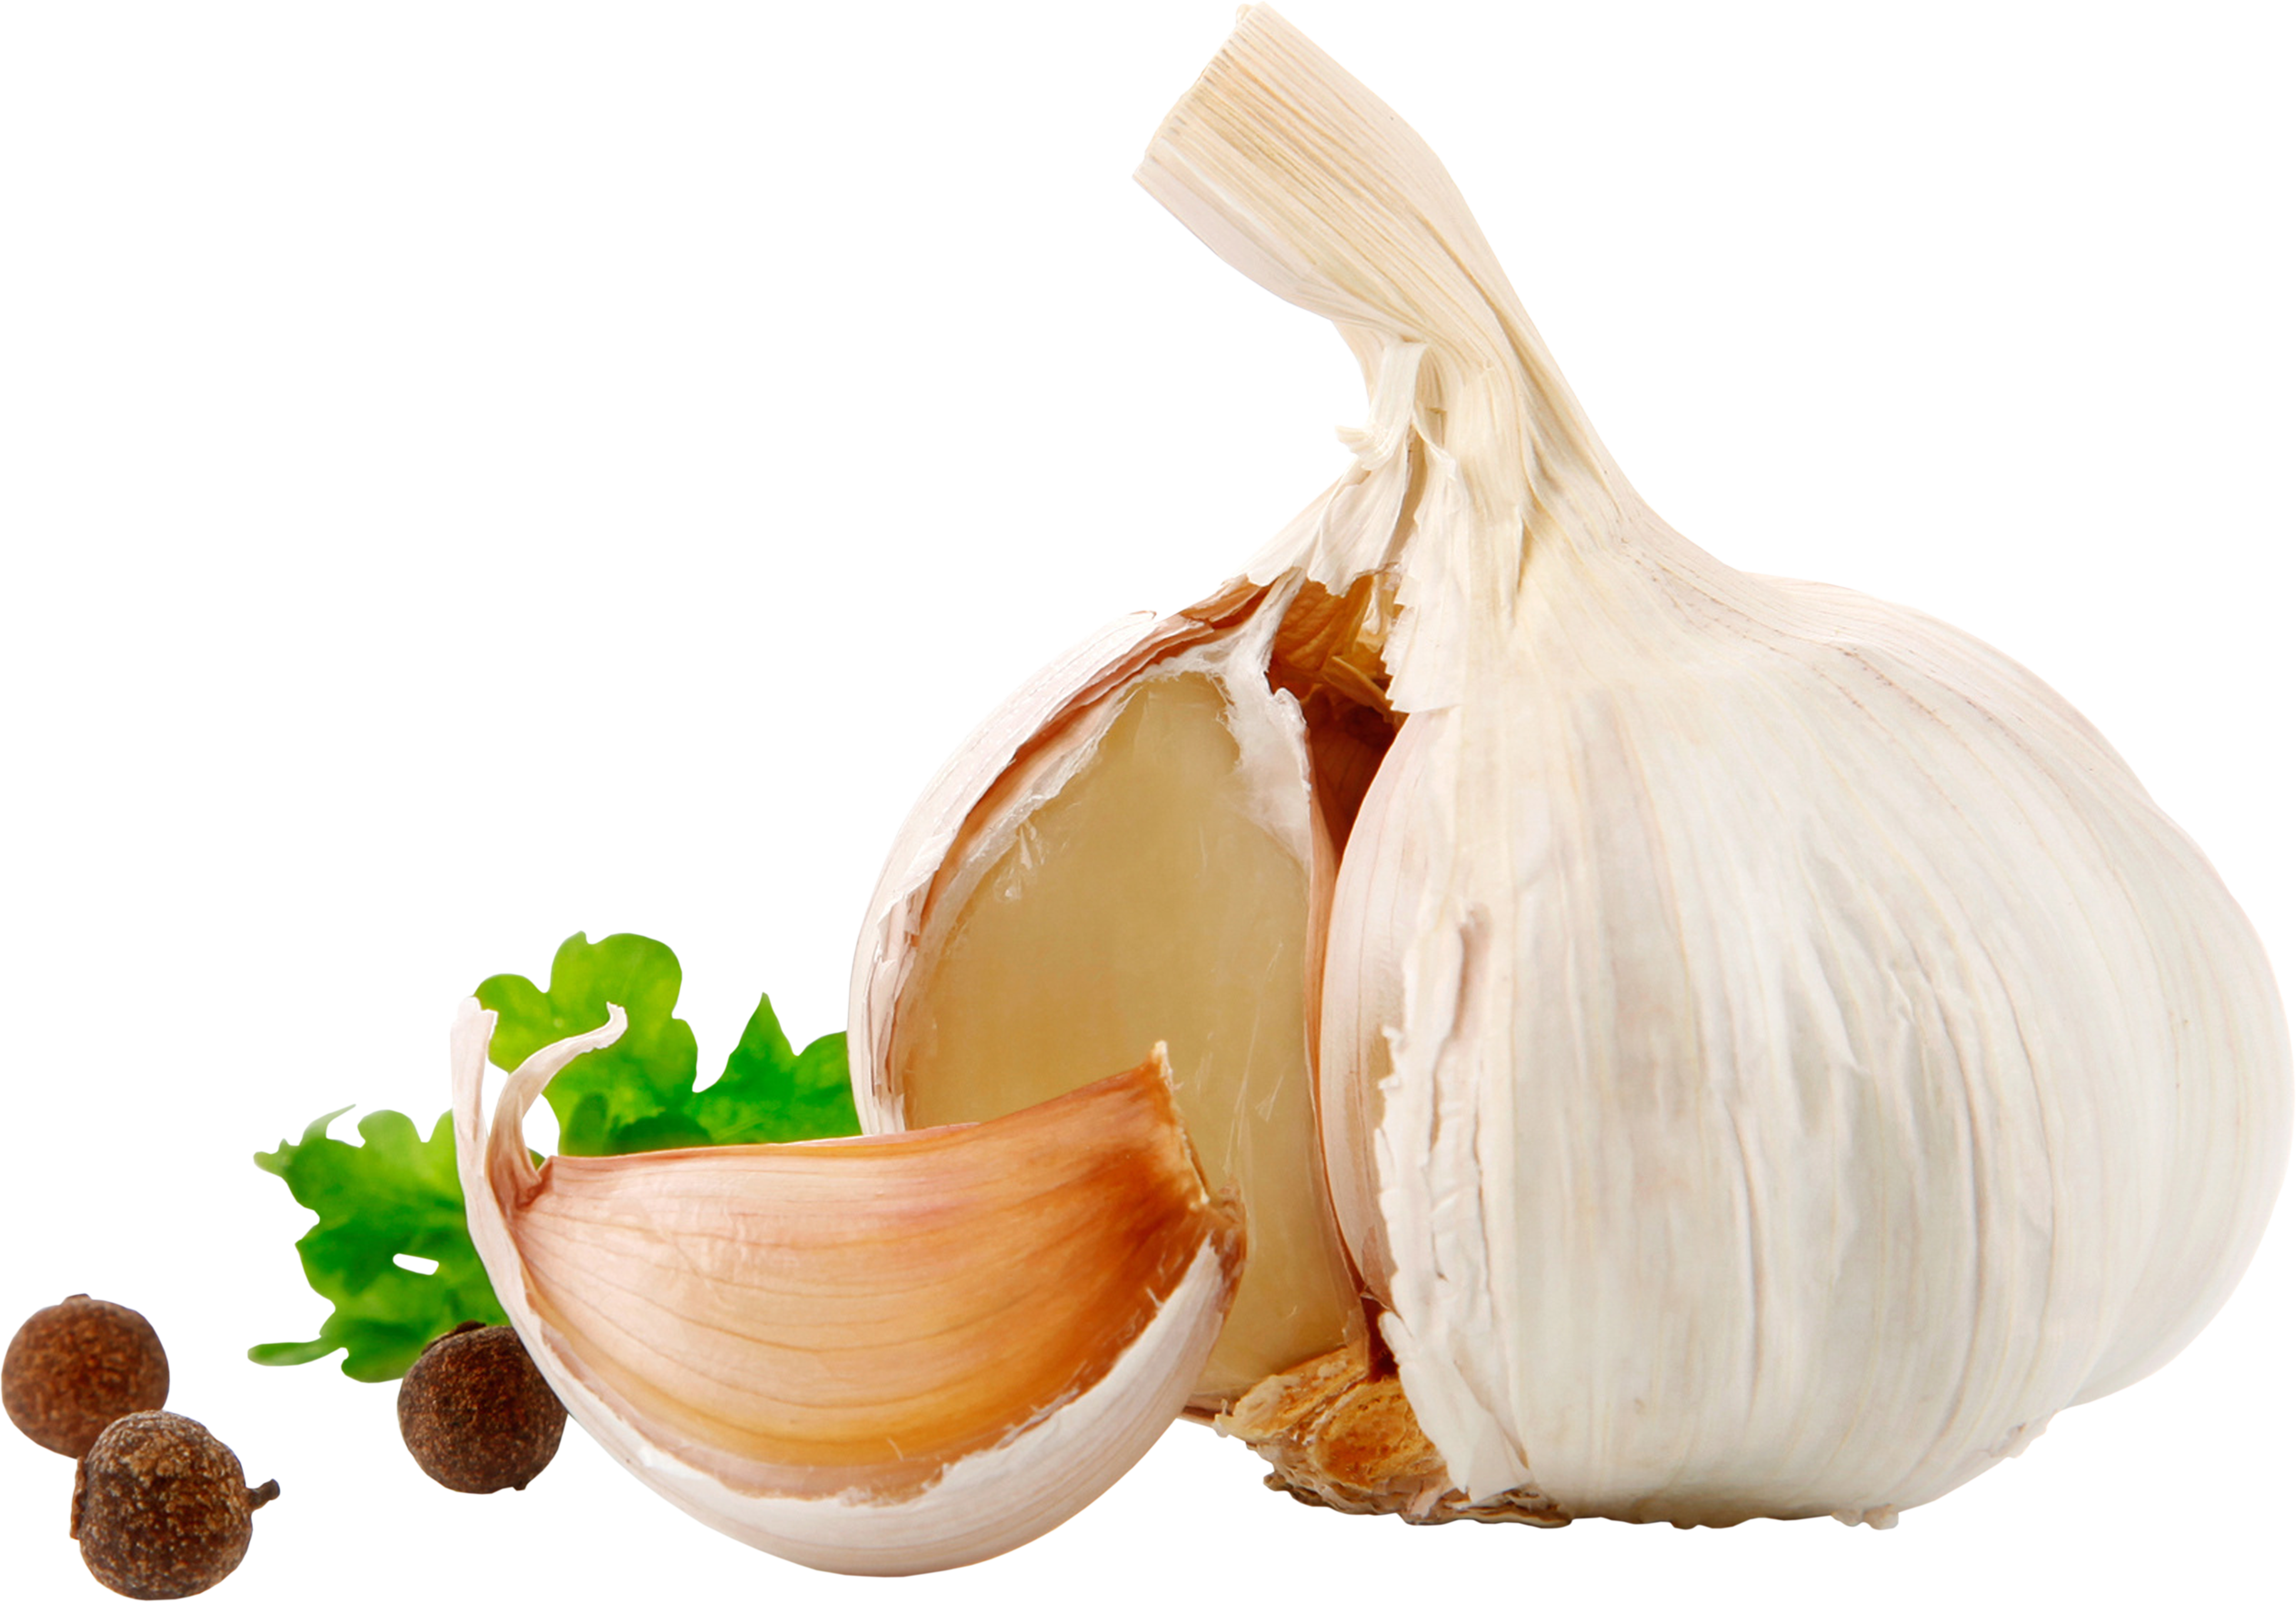 garlic png images for download crazypngm #25530